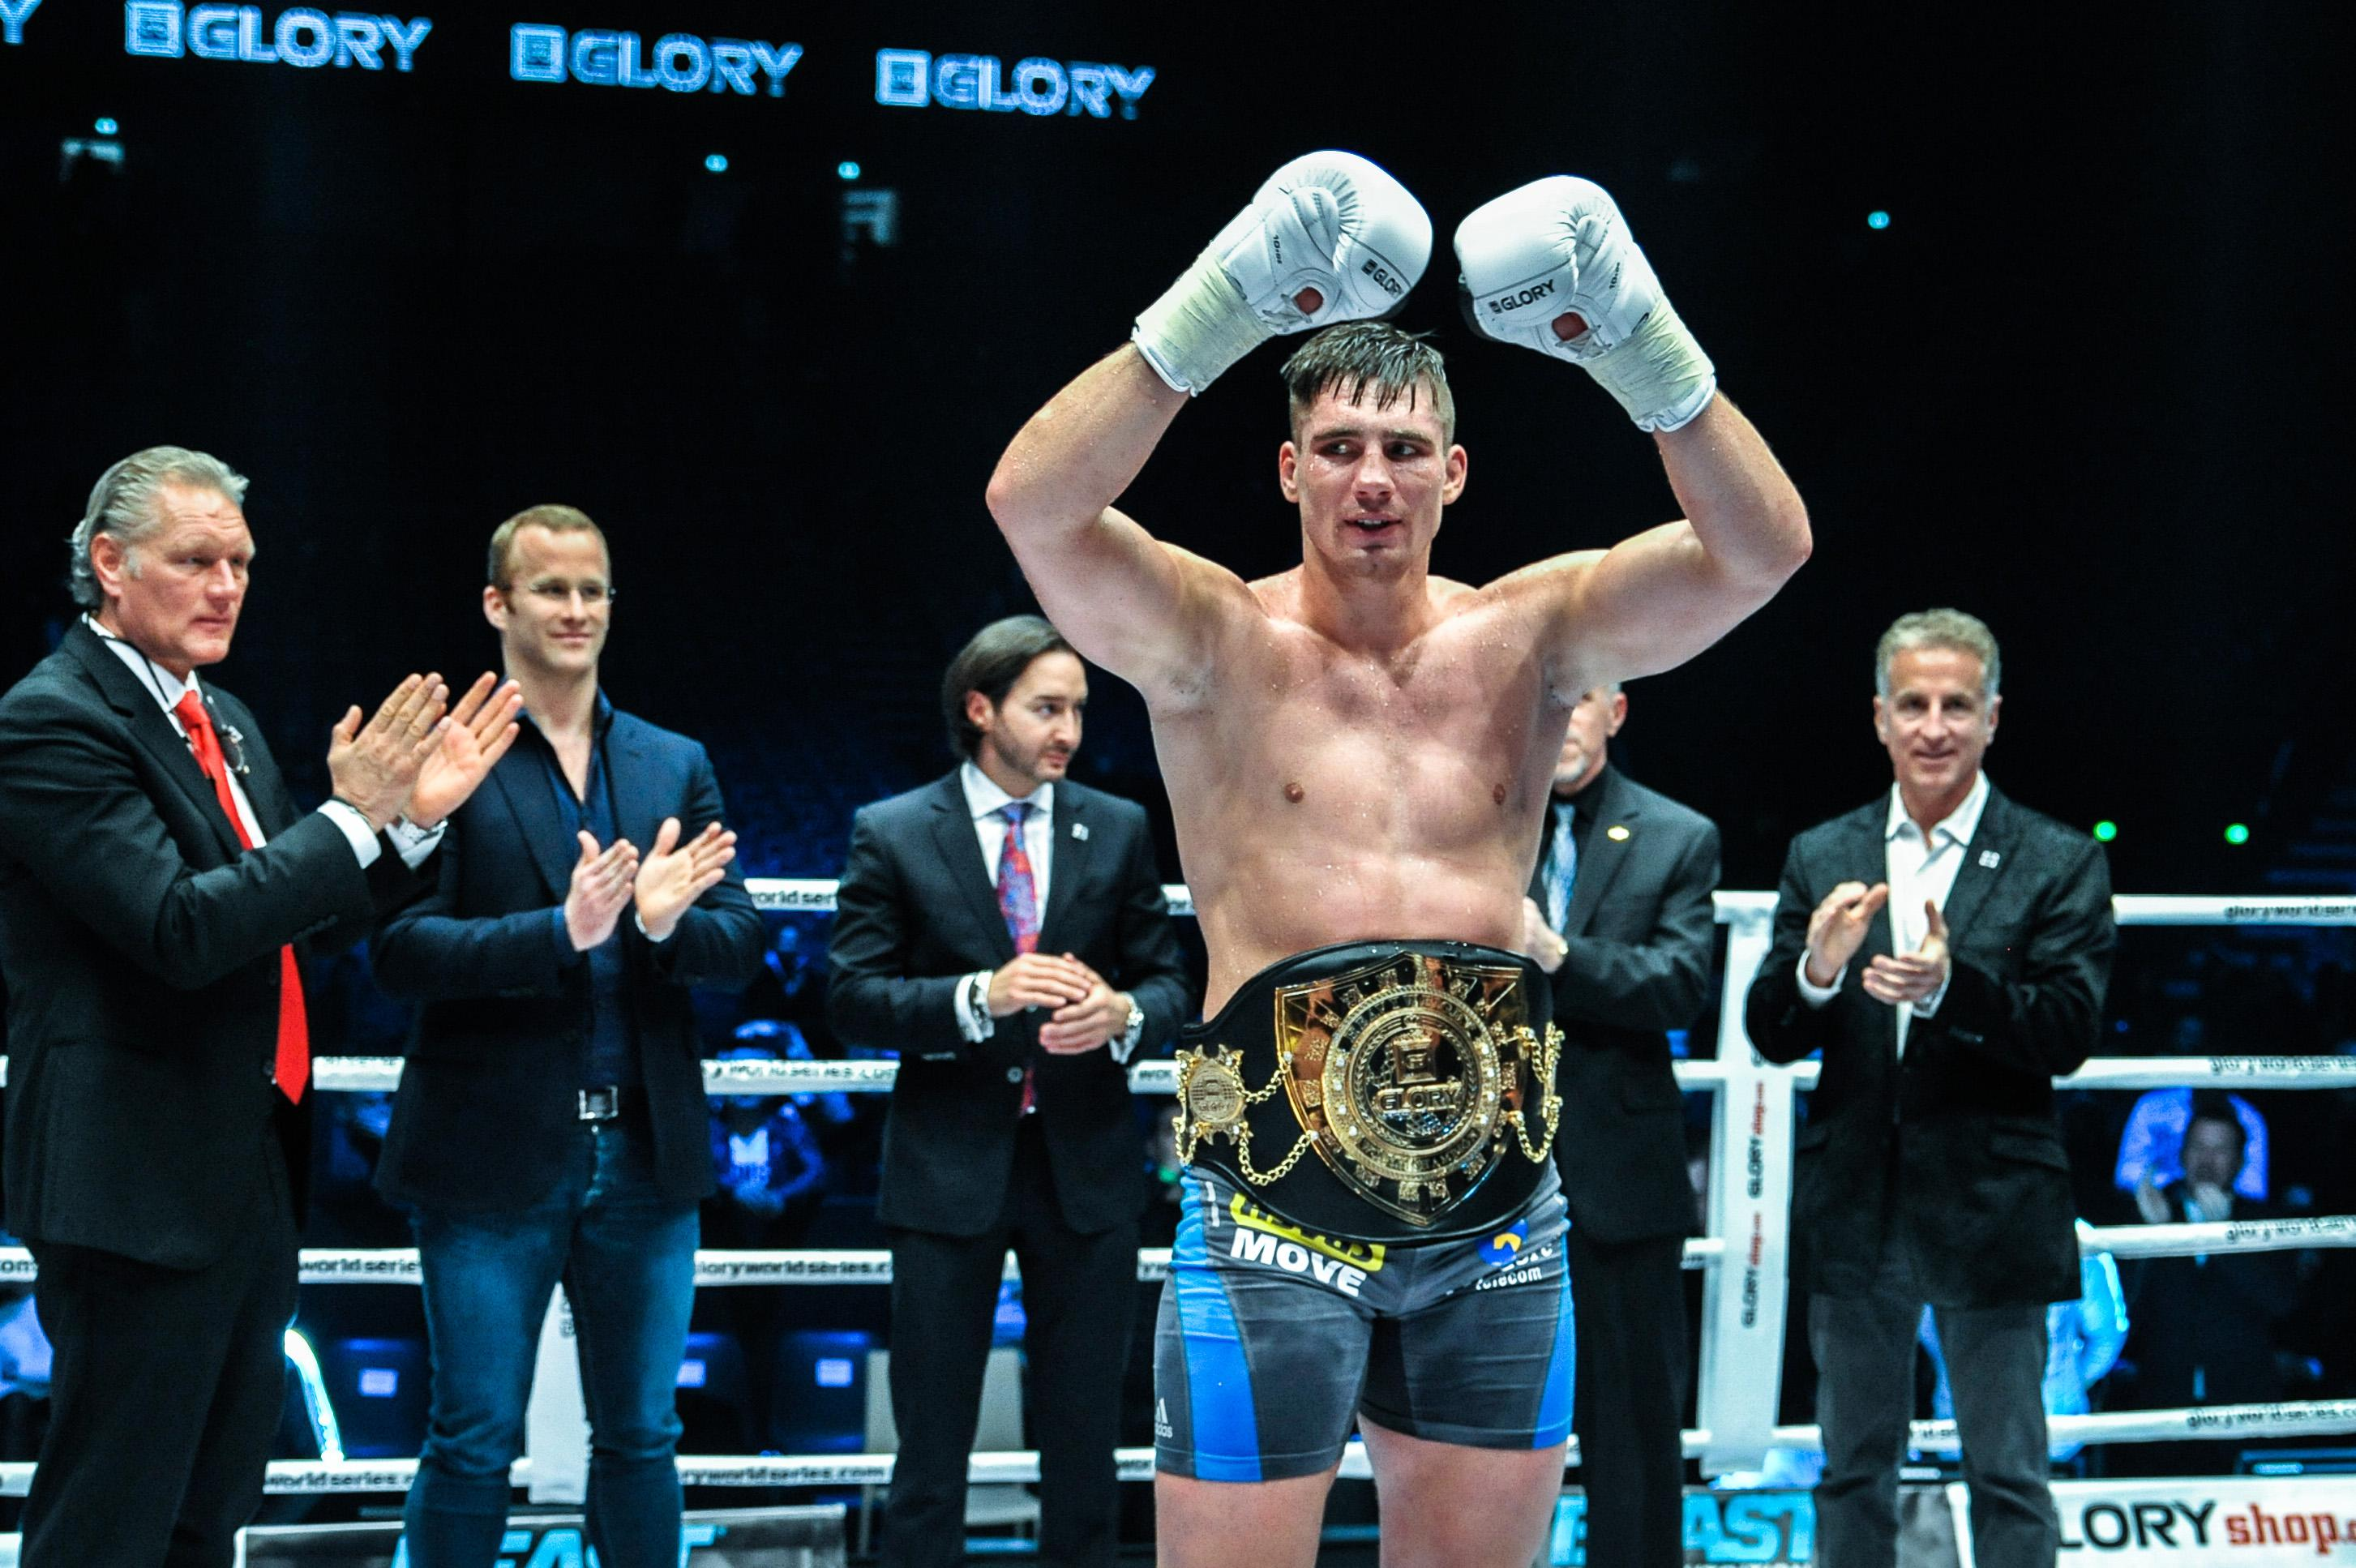 Dutch master Rico Verhoeven is the Glory heavyweight world champion